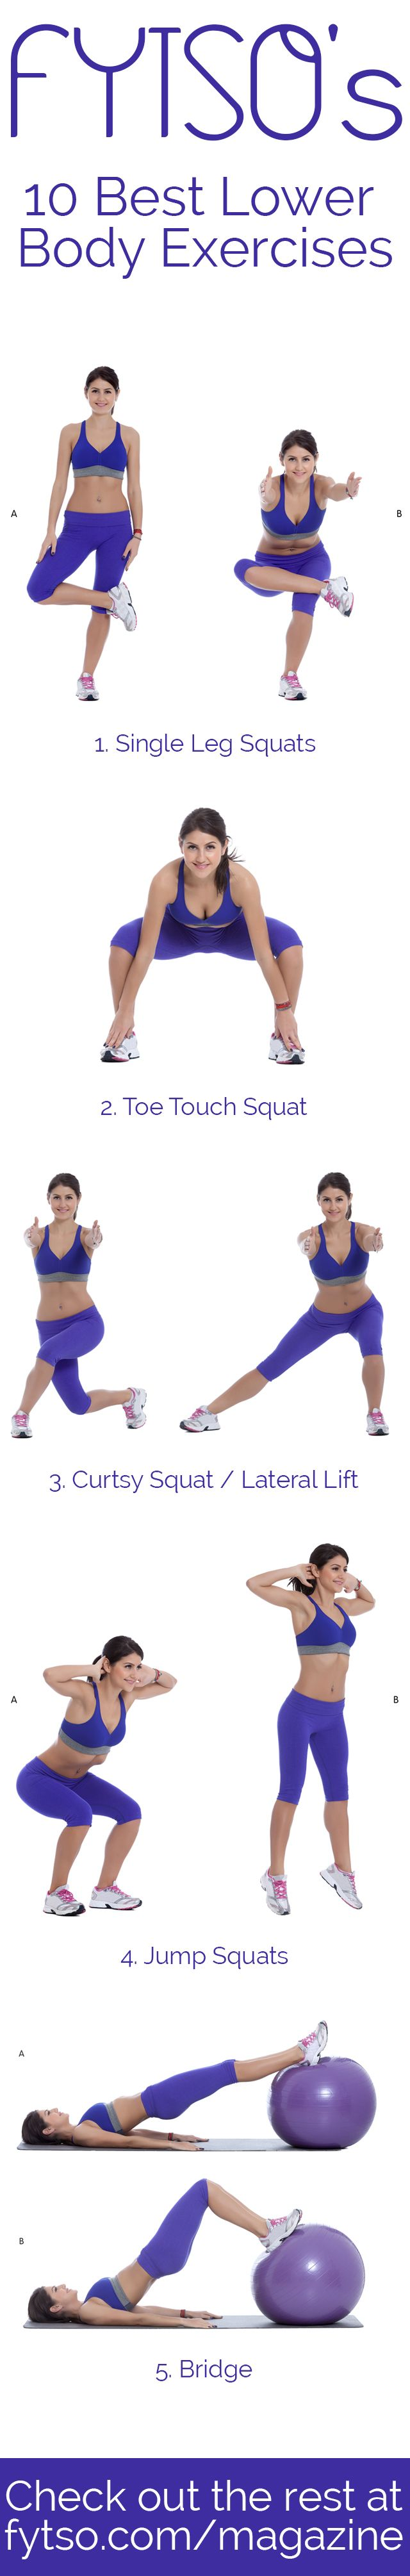 If you're ready to feel the burn, try these 10 best lower body exercises